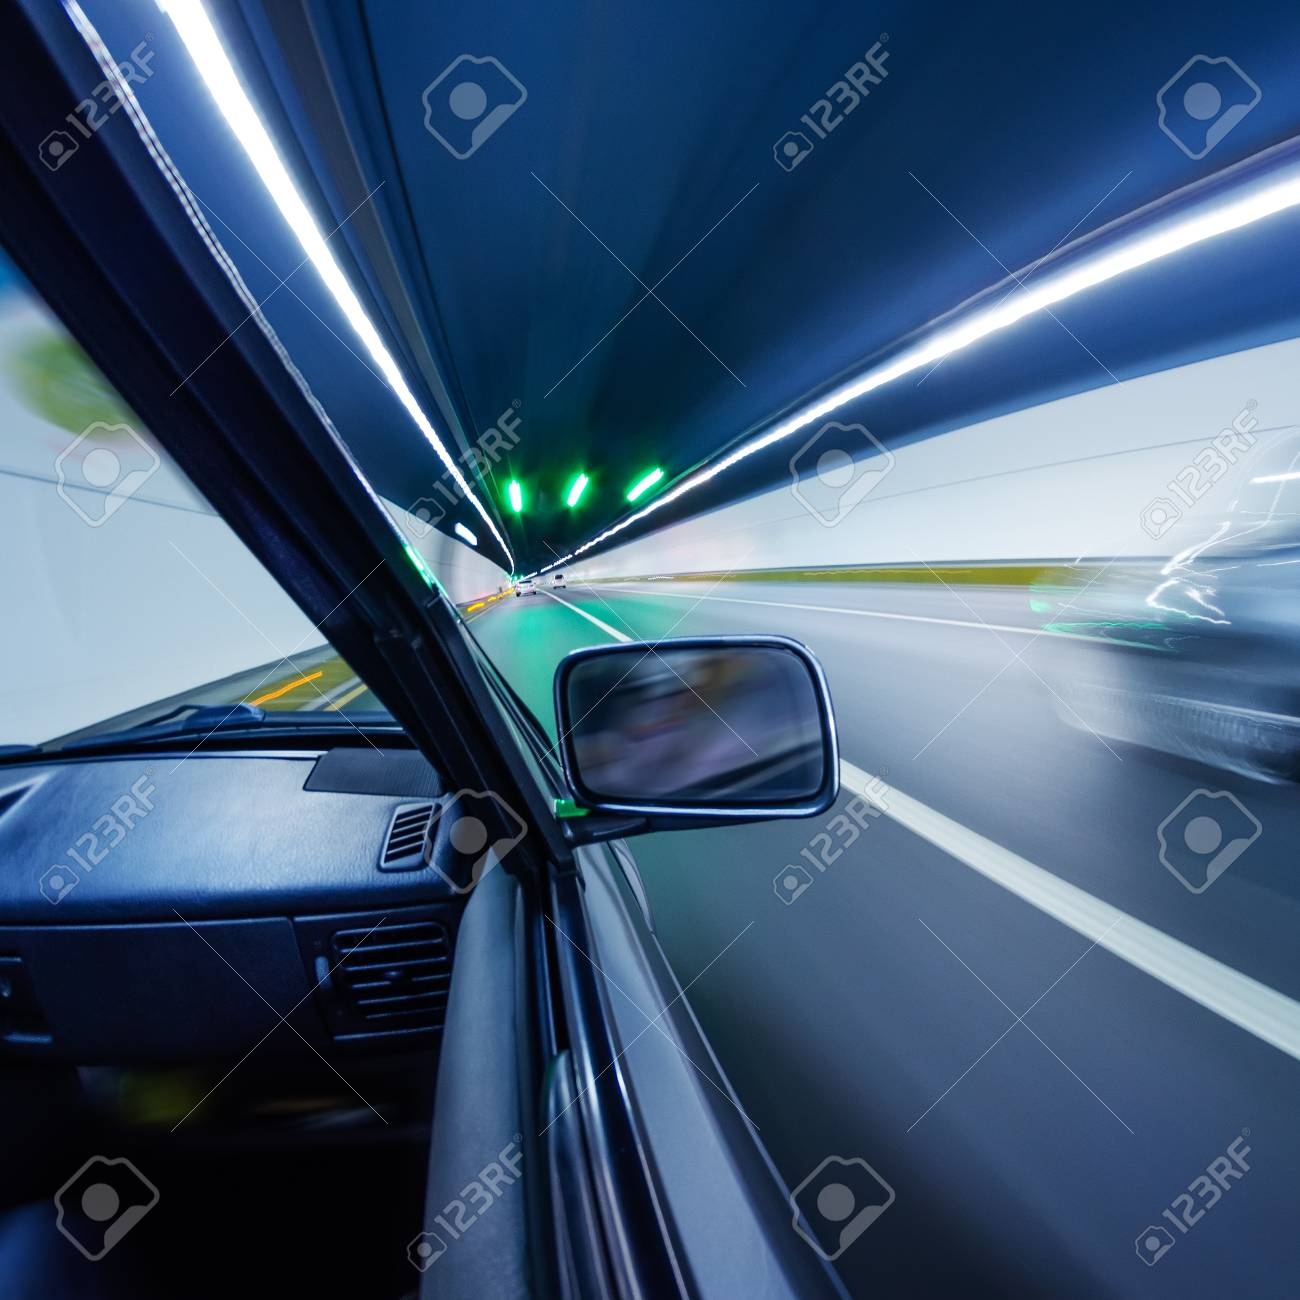 car on the tunnel wiht motion blur background Stock Photo - 14833053